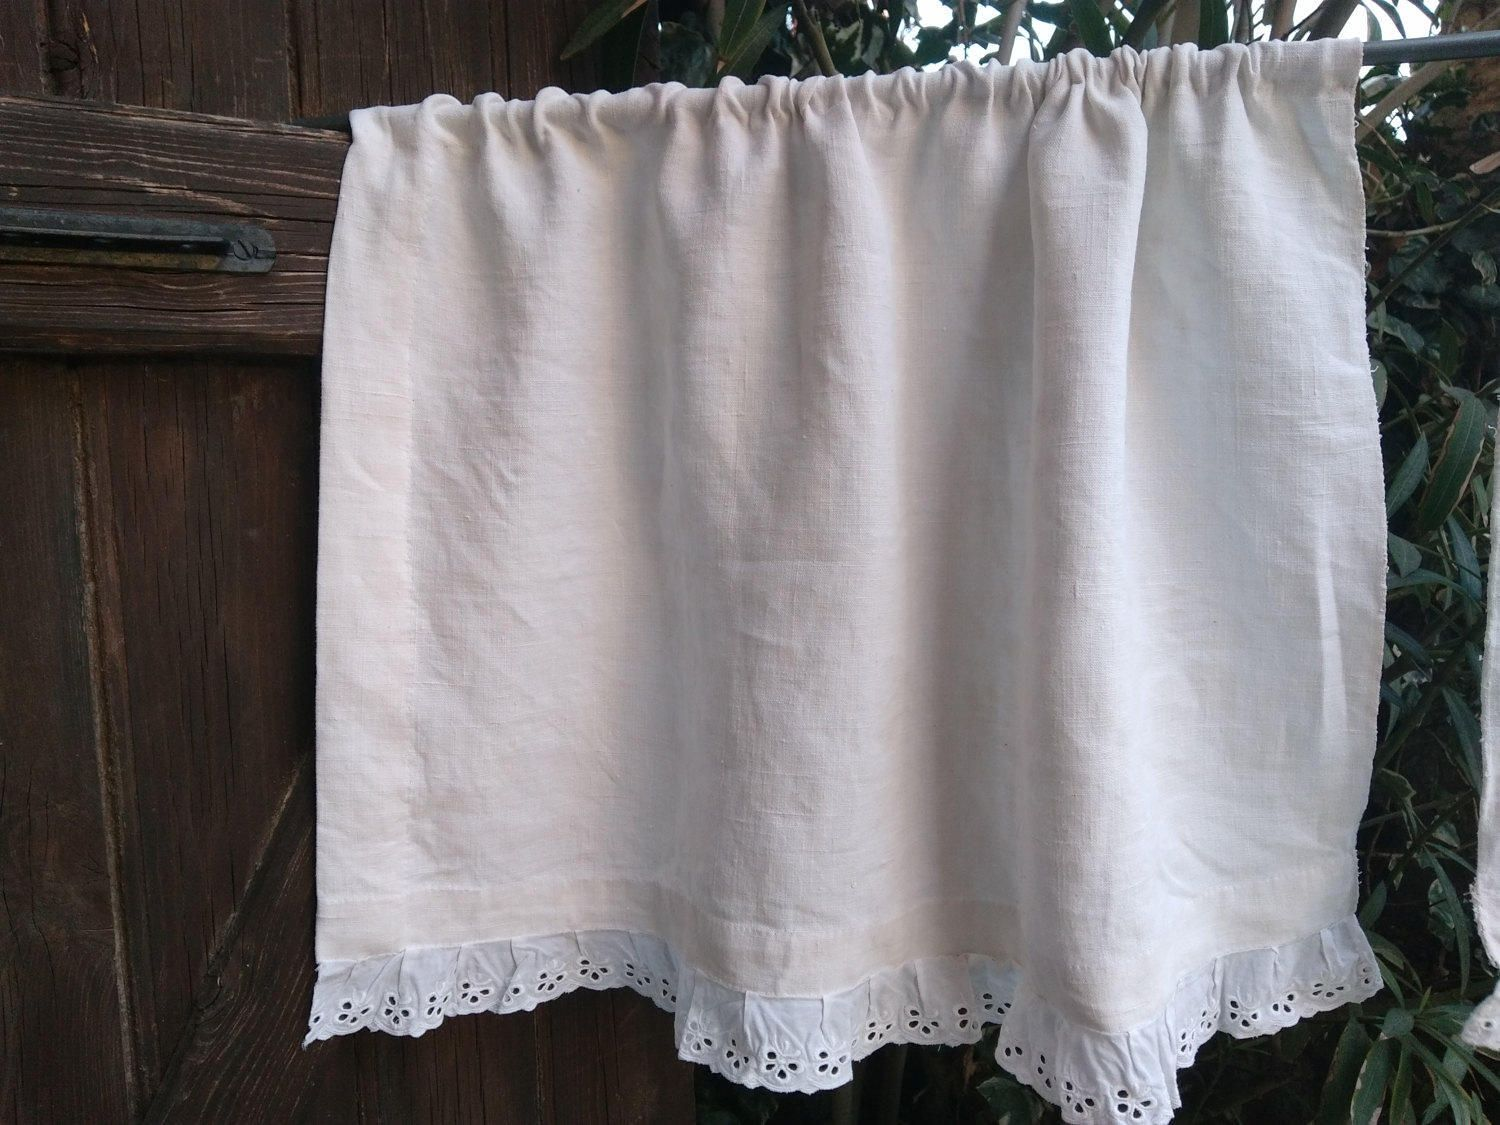 Rustic antique white linen curtain eyelet lace trim french handmade